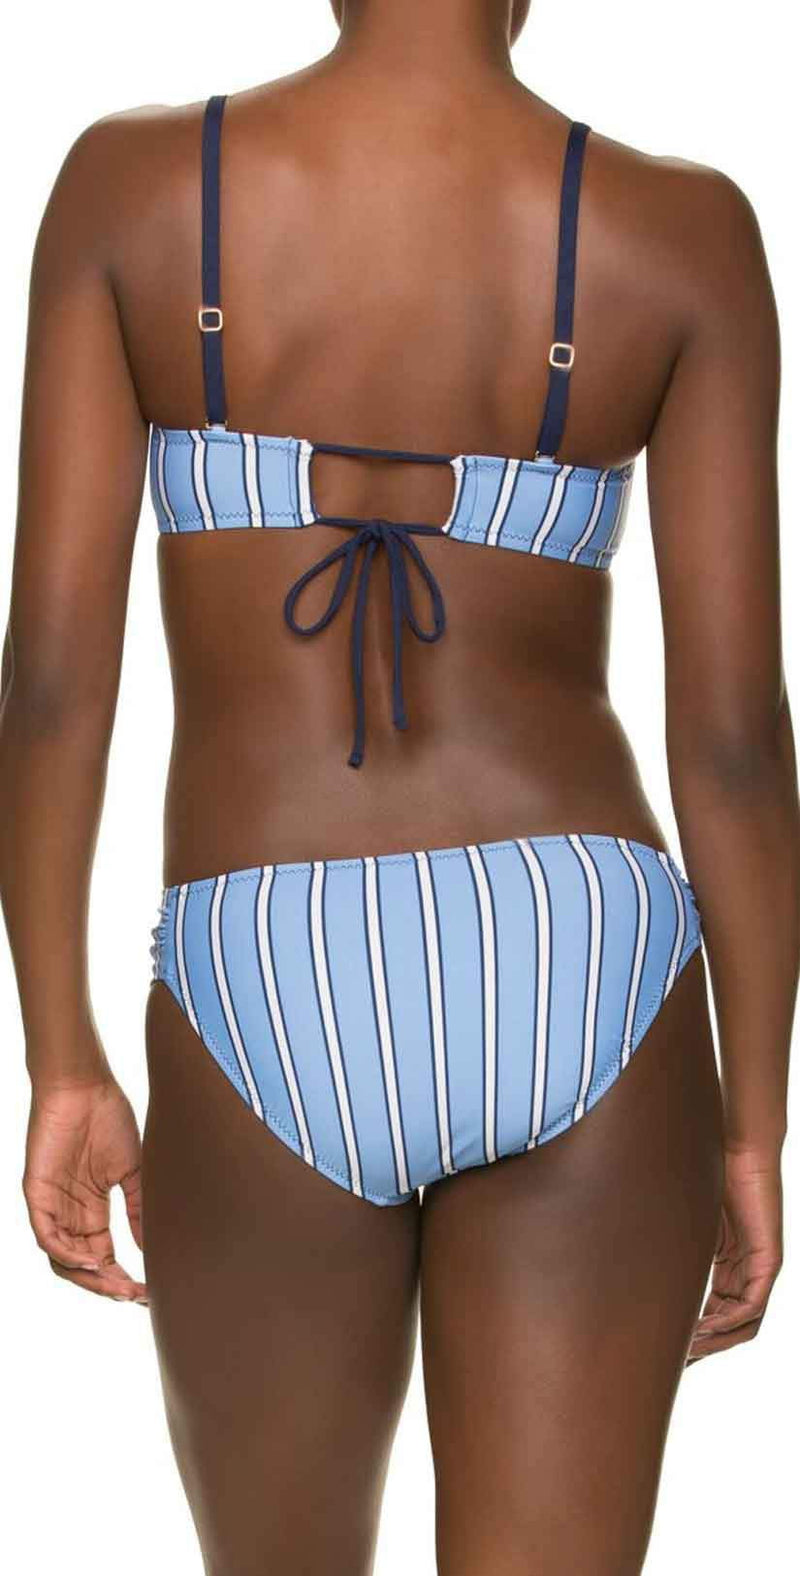 Draper James for Helen Jon Tucked Bandeau Bra in Bold Stripe: